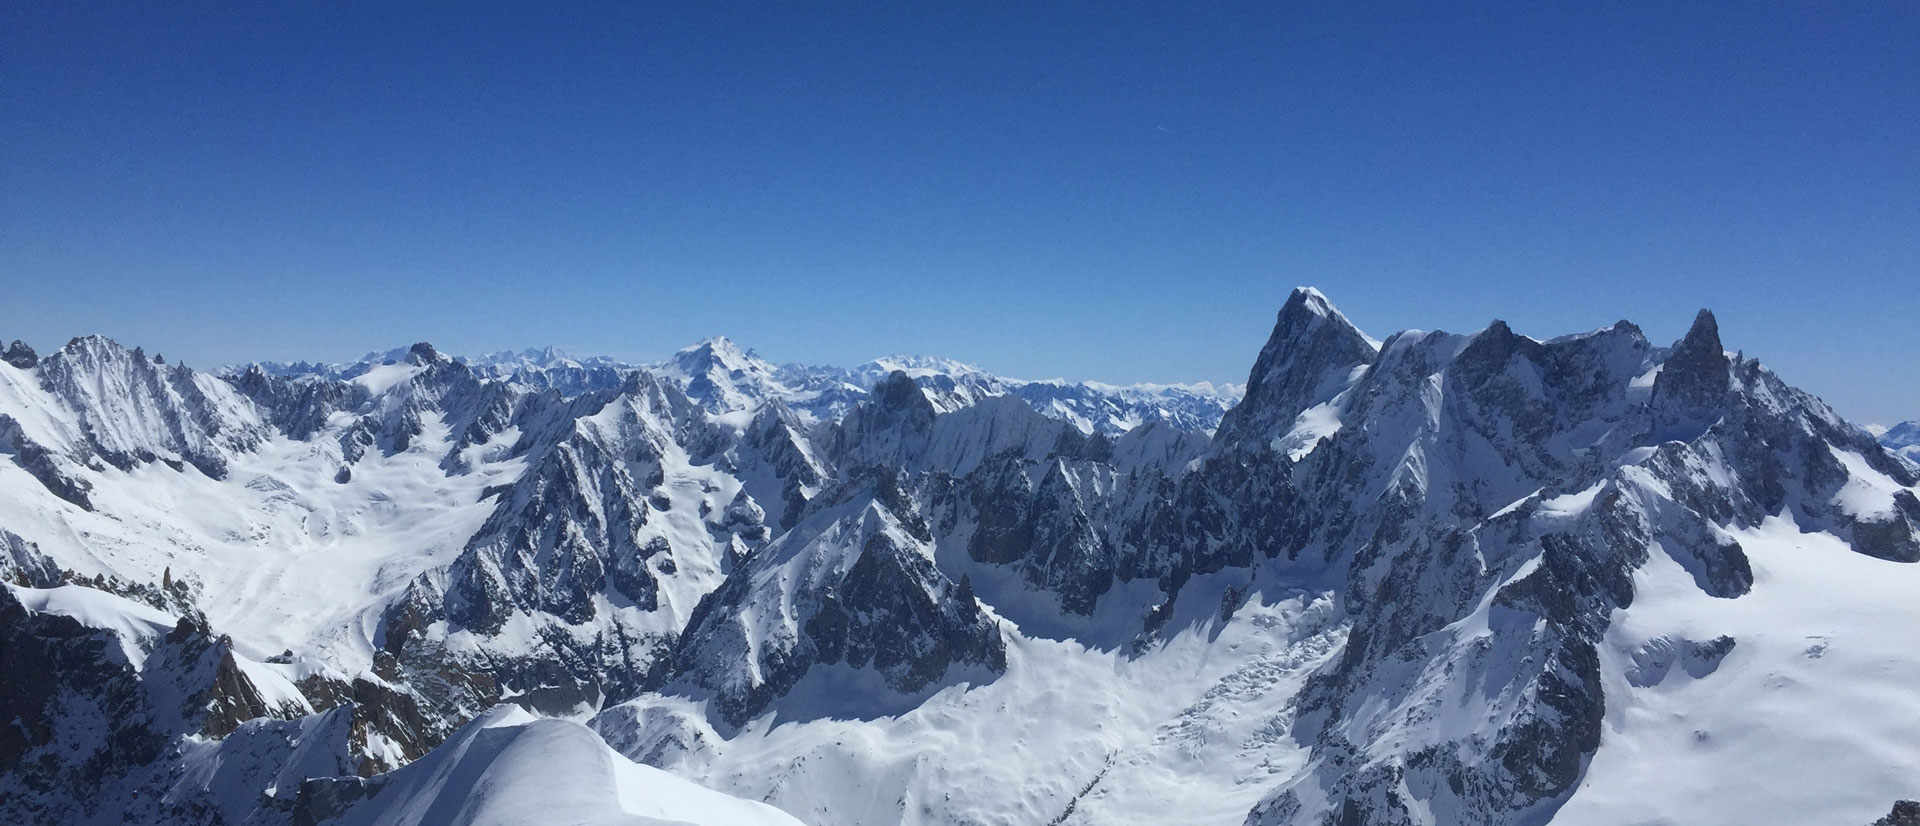 The majestic 4000m high mountains in the Chamonix area juxtaposed with a bright blue ski - perfect for off-piste skiing